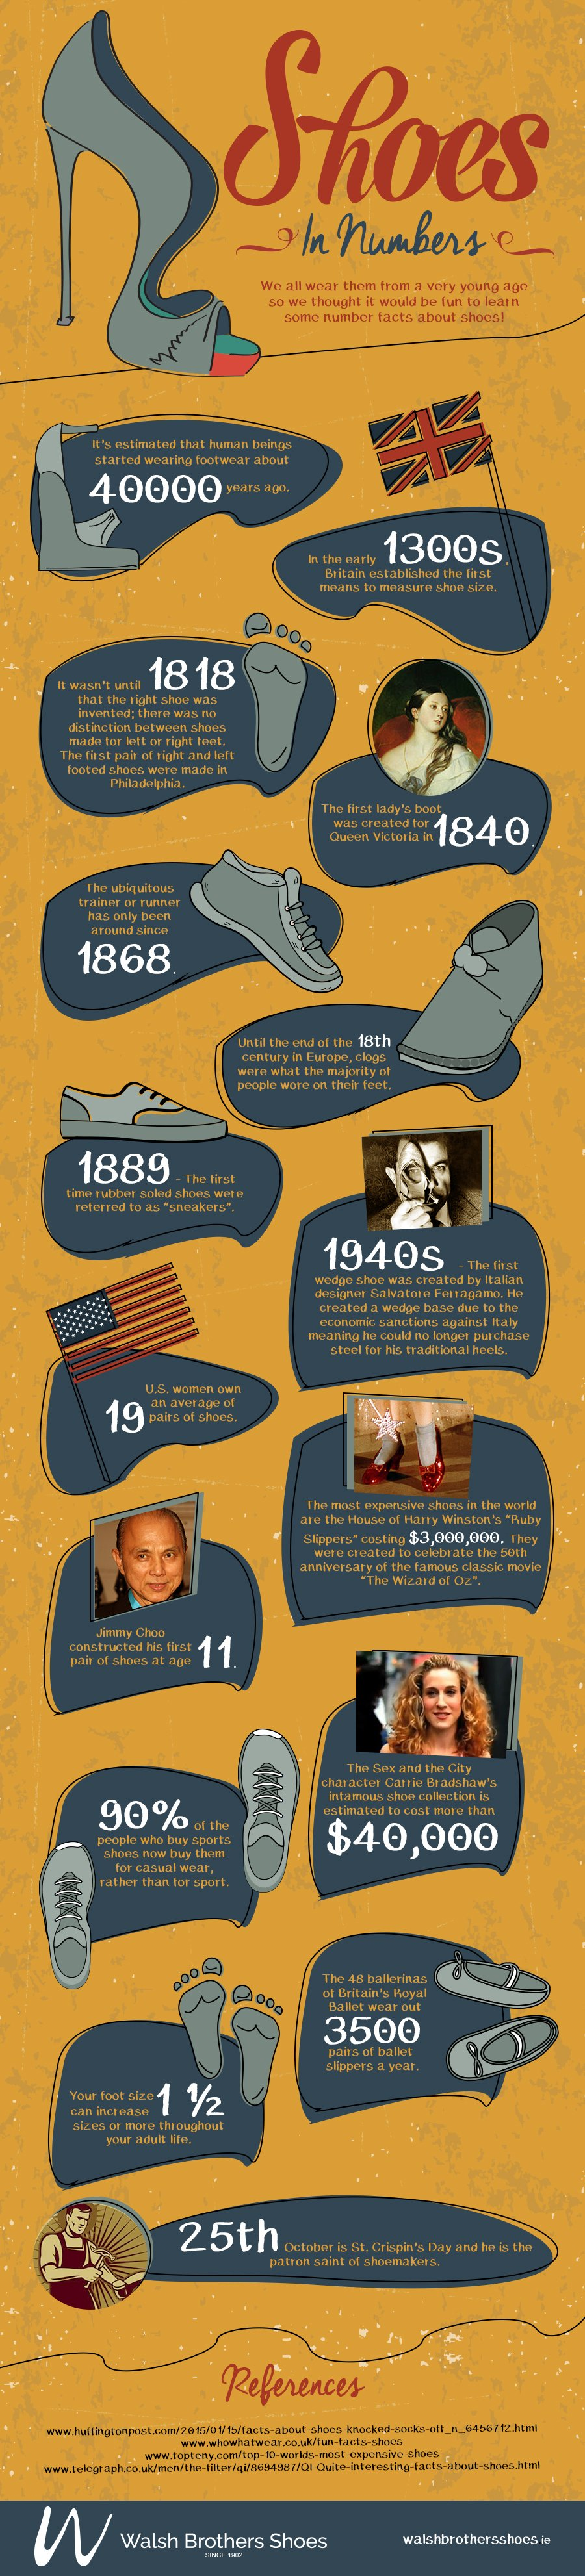 Shoe Facts Infographic